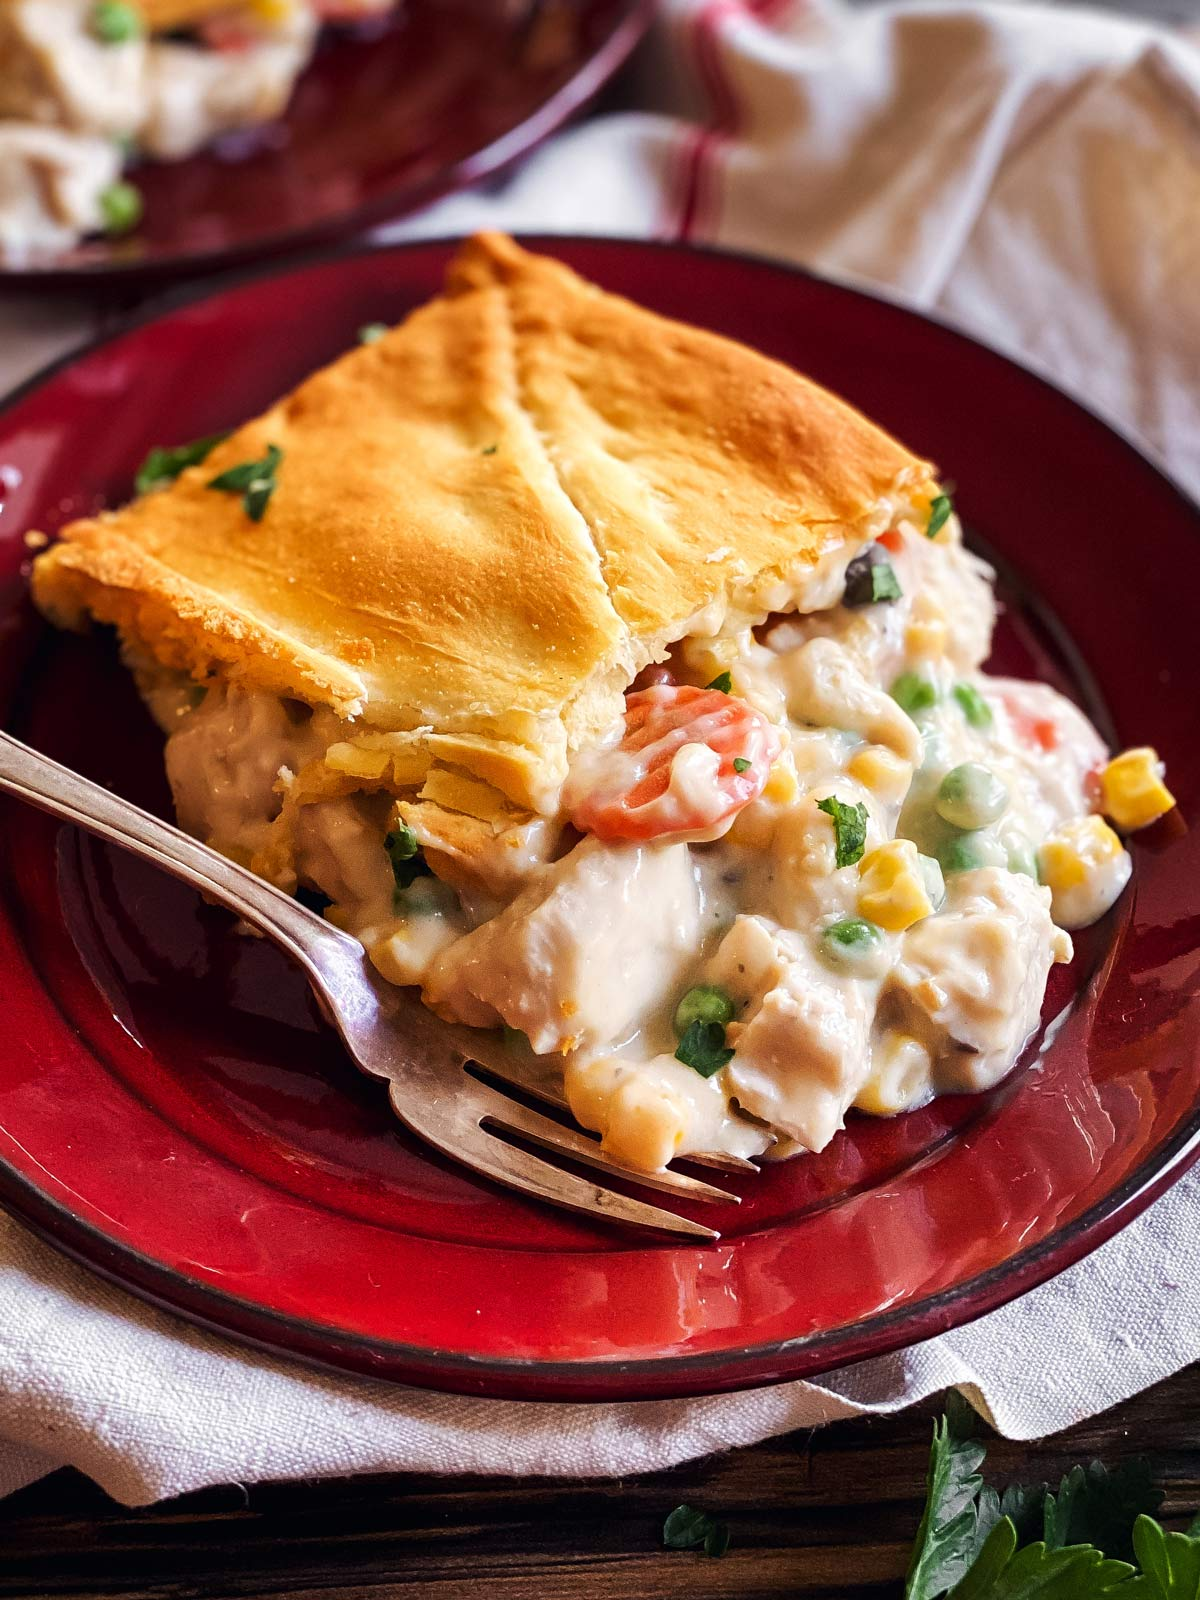 slice of leftover turkey pot pie on red plate